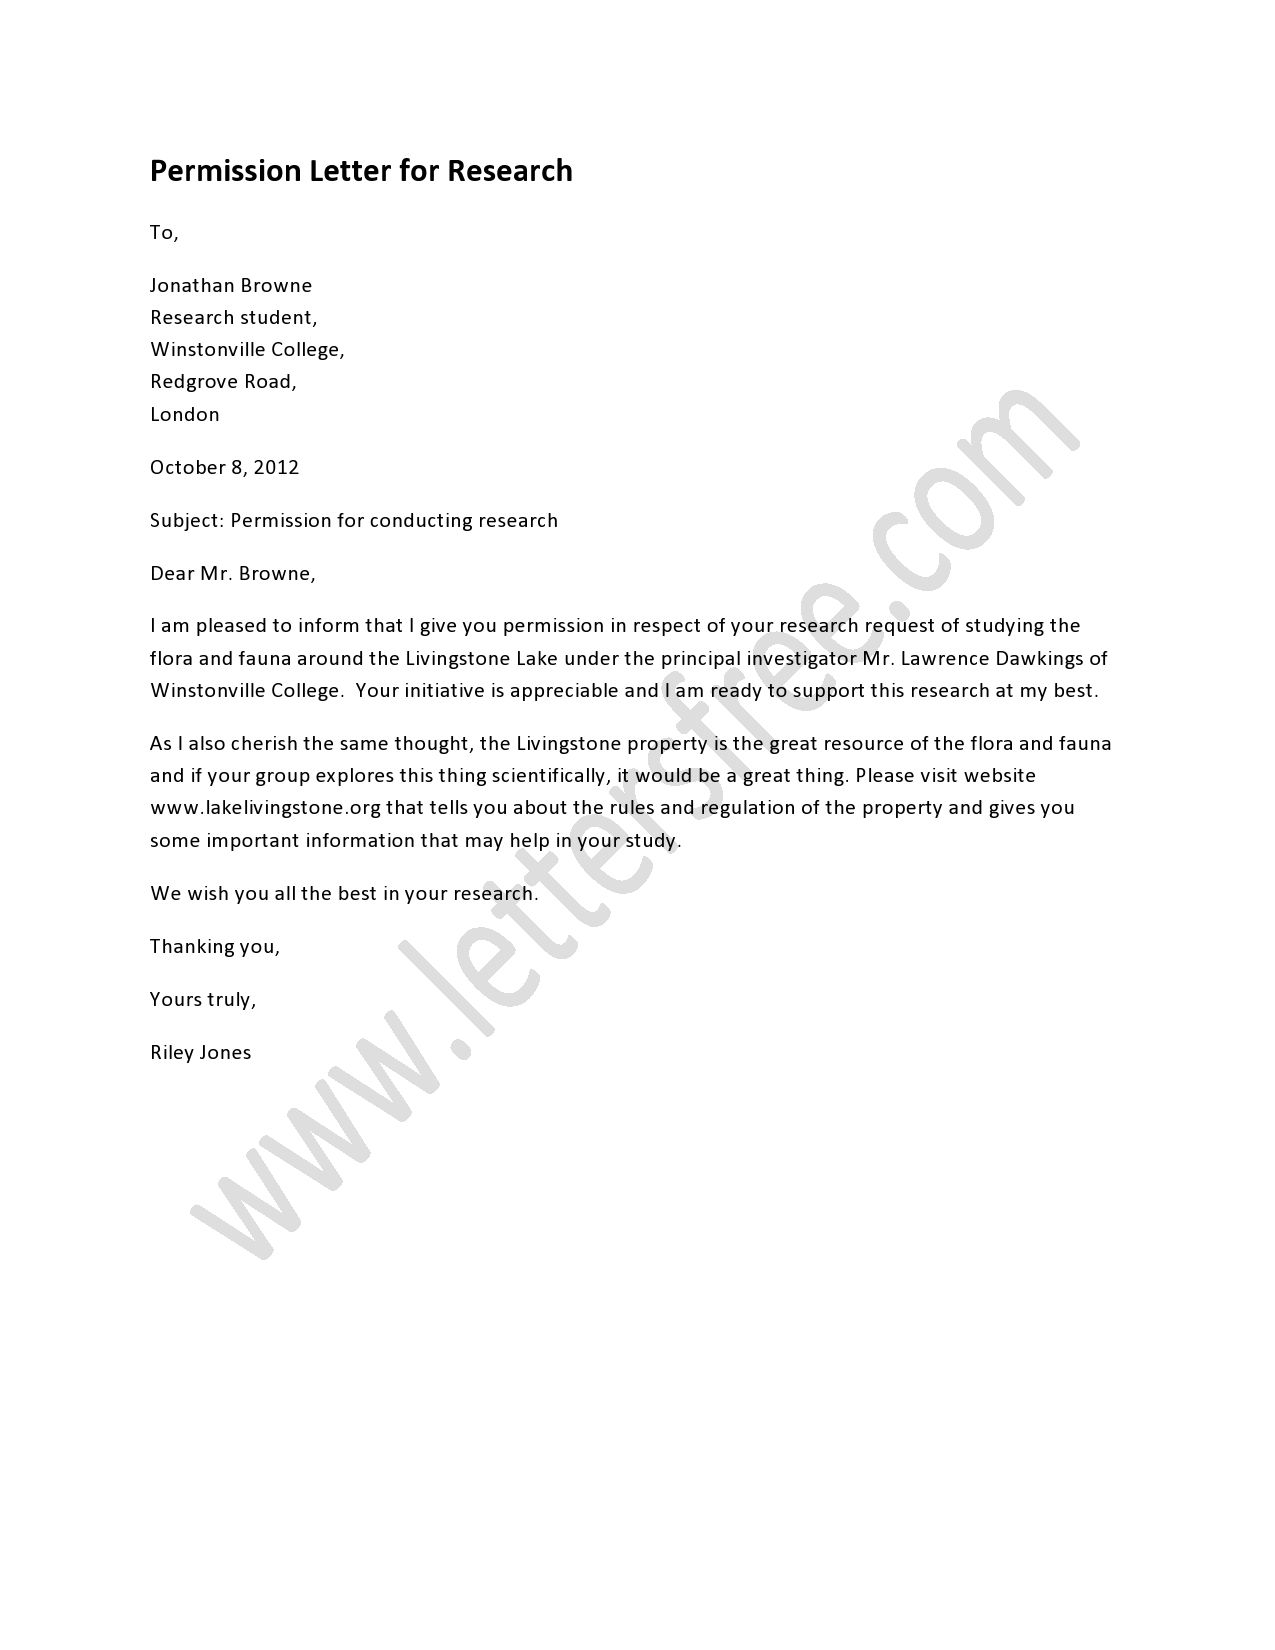 Permission letter for research pinterest programming a permission letter for research is written in respect of a request letter for conducting a research program in a certain field of the interest thecheapjerseys Choice Image